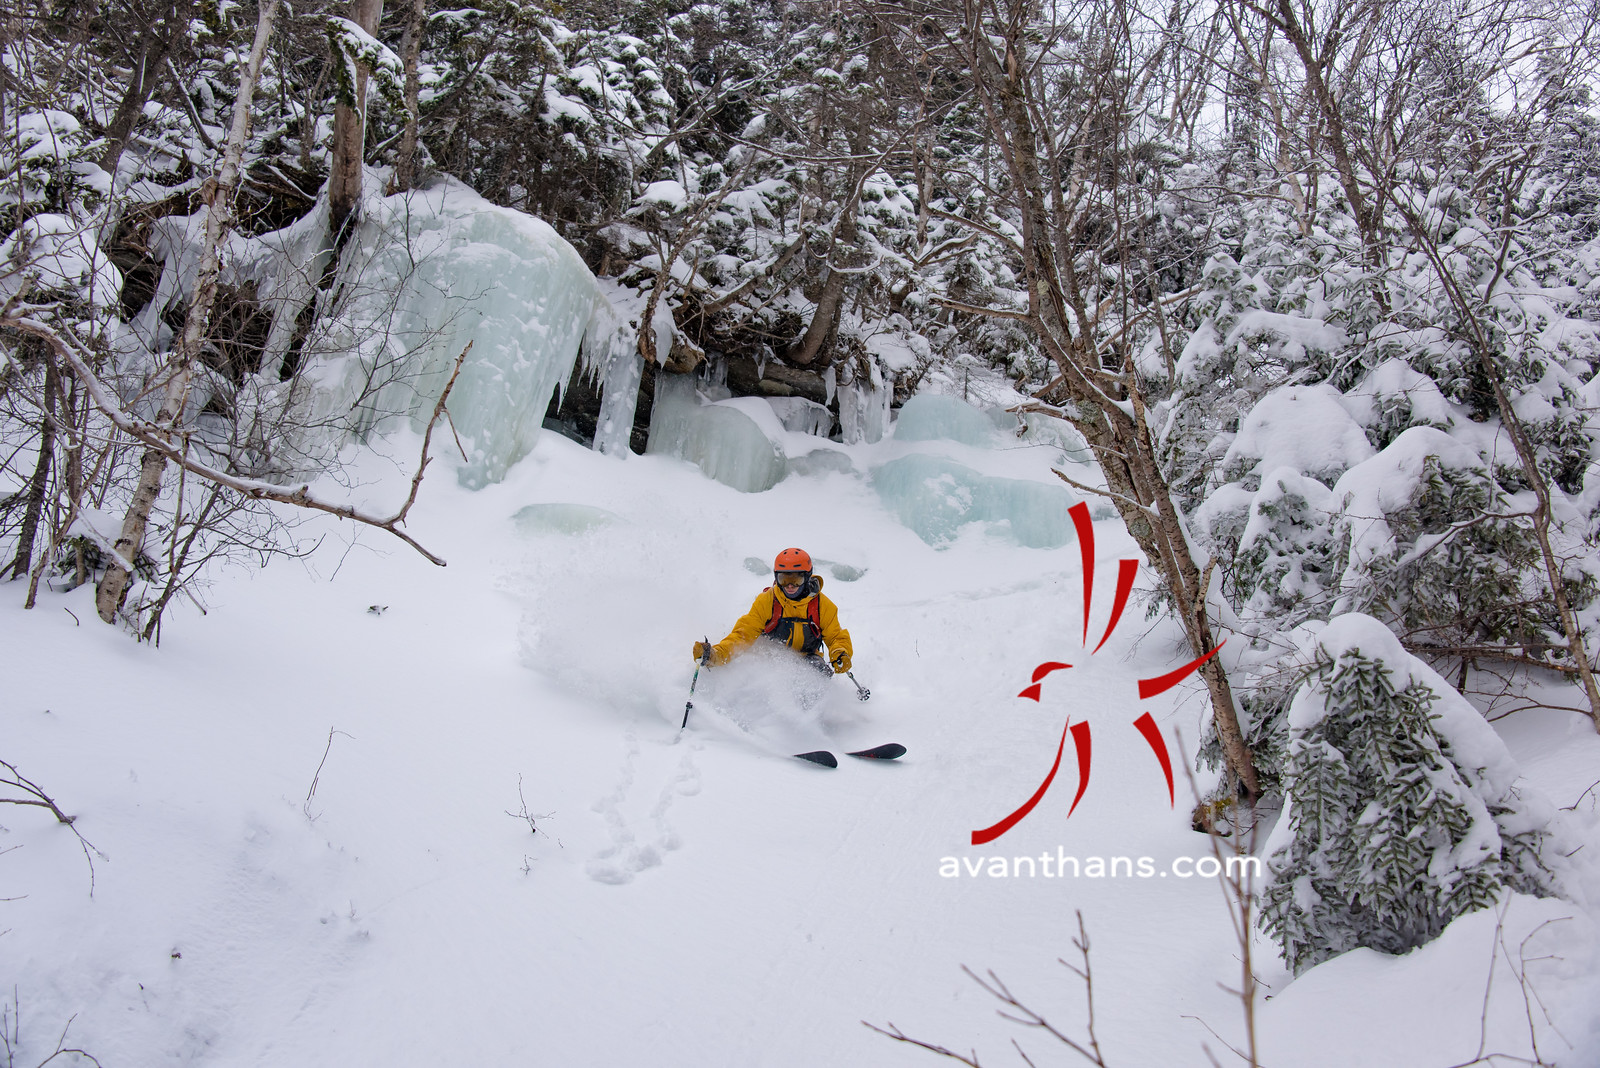 """photo by Hans von Briesen """"Tim McClellan journey'd for 2 hours to get here in hopes of a couple nice turns.  It was an adventure that paid off big."""""""